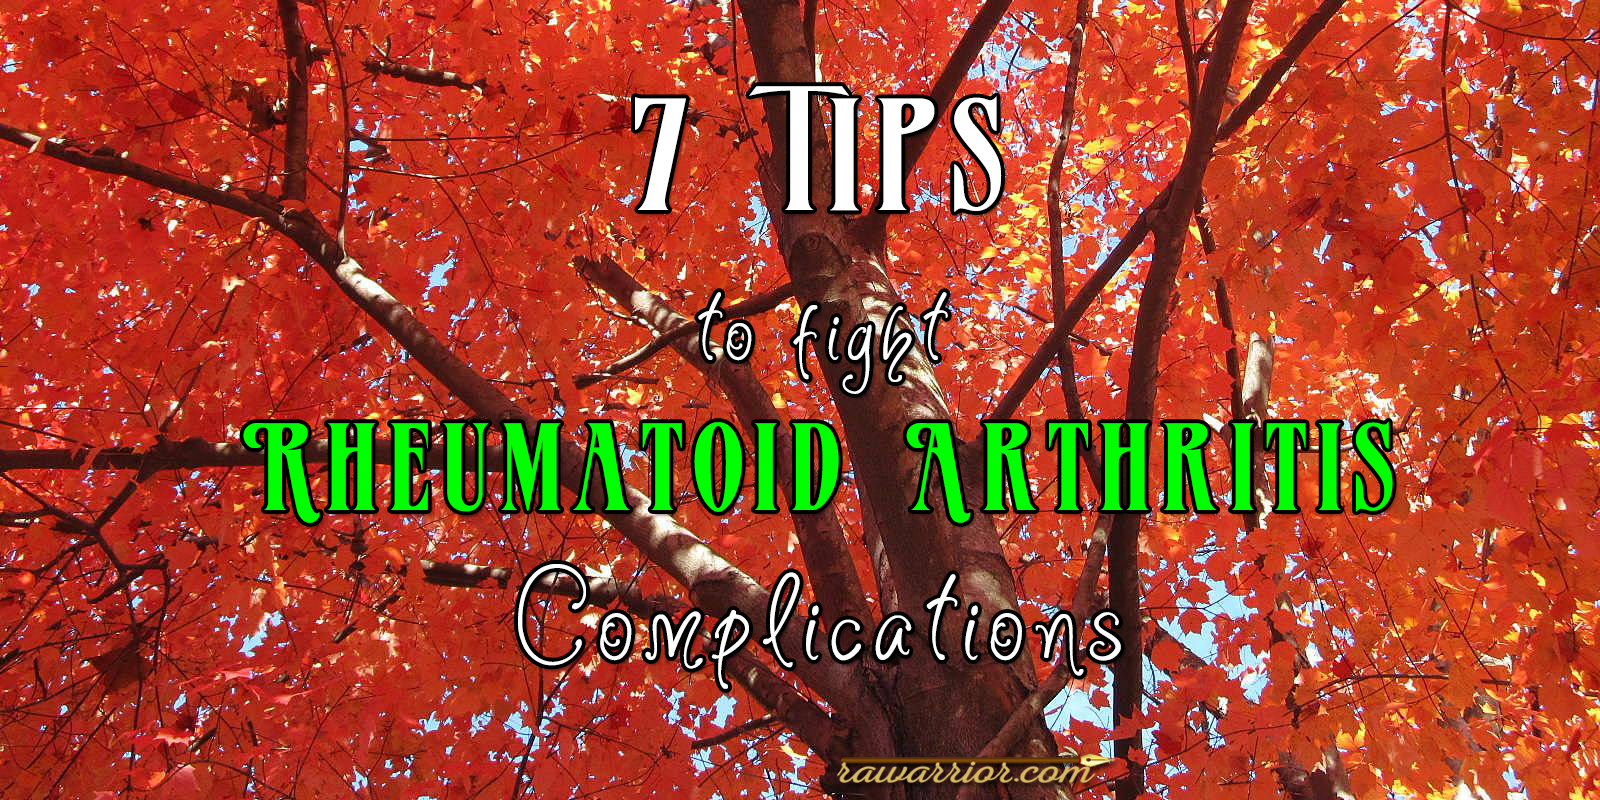 7 Tips on Rheumatoid Arthritis Complications